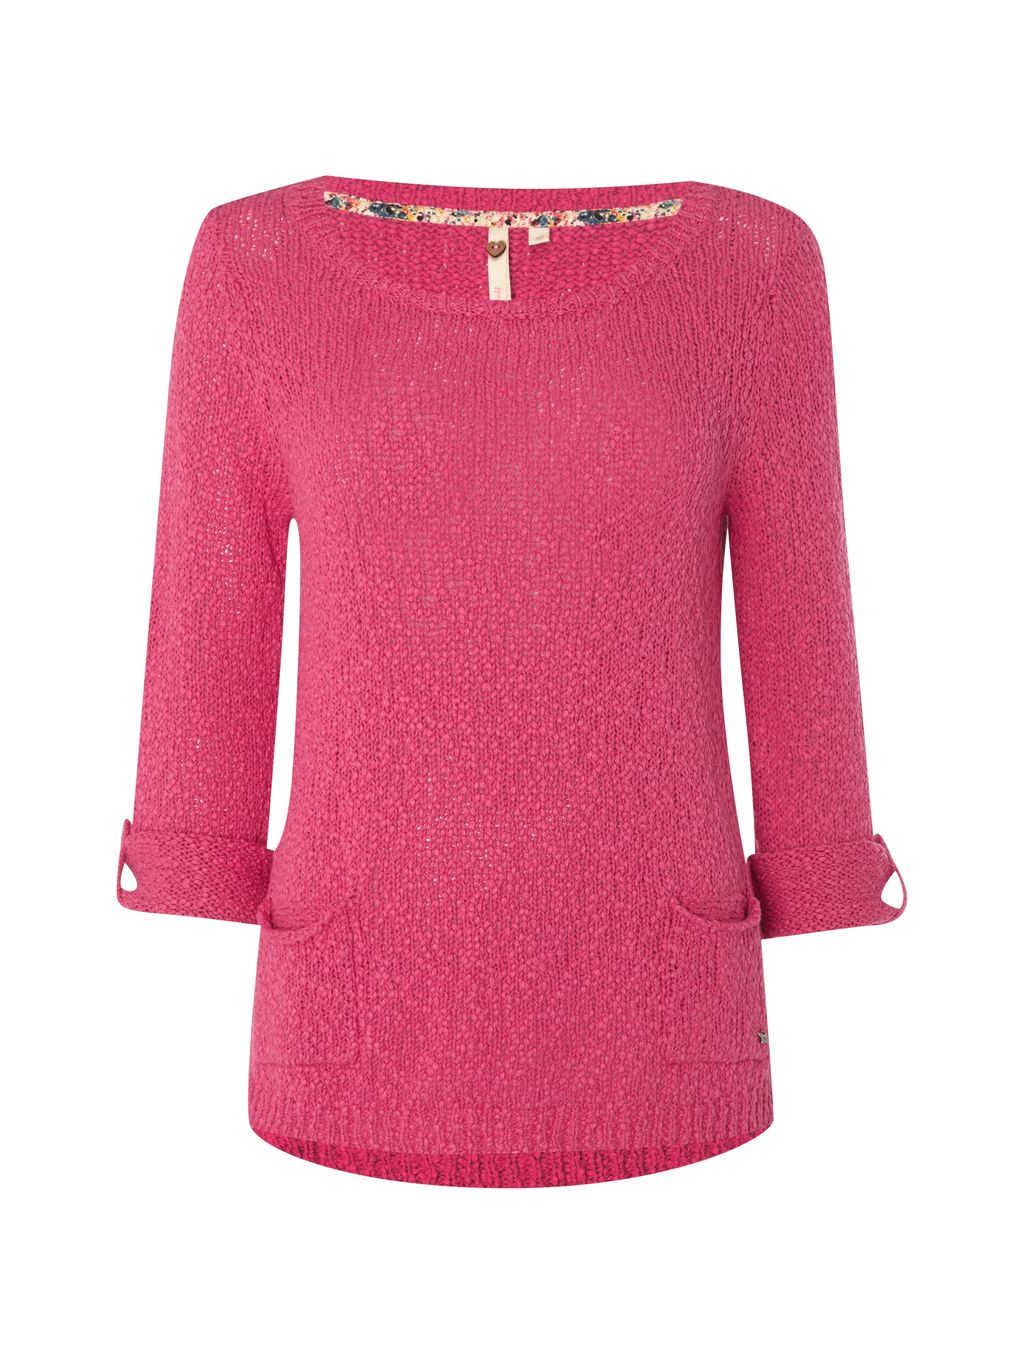 Himalaya Knit Top, Pink - neckline: round neck; pattern: plain; length: below the bottom; predominant colour: hot pink; occasions: casual, creative work; style: top; fibres: cotton - 100%; fit: body skimming; sleeve length: long sleeve; sleeve style: standard; texture group: knits/crochet; pattern type: knitted - other; pattern size: standard; season: s/s 2016; wardrobe: highlight